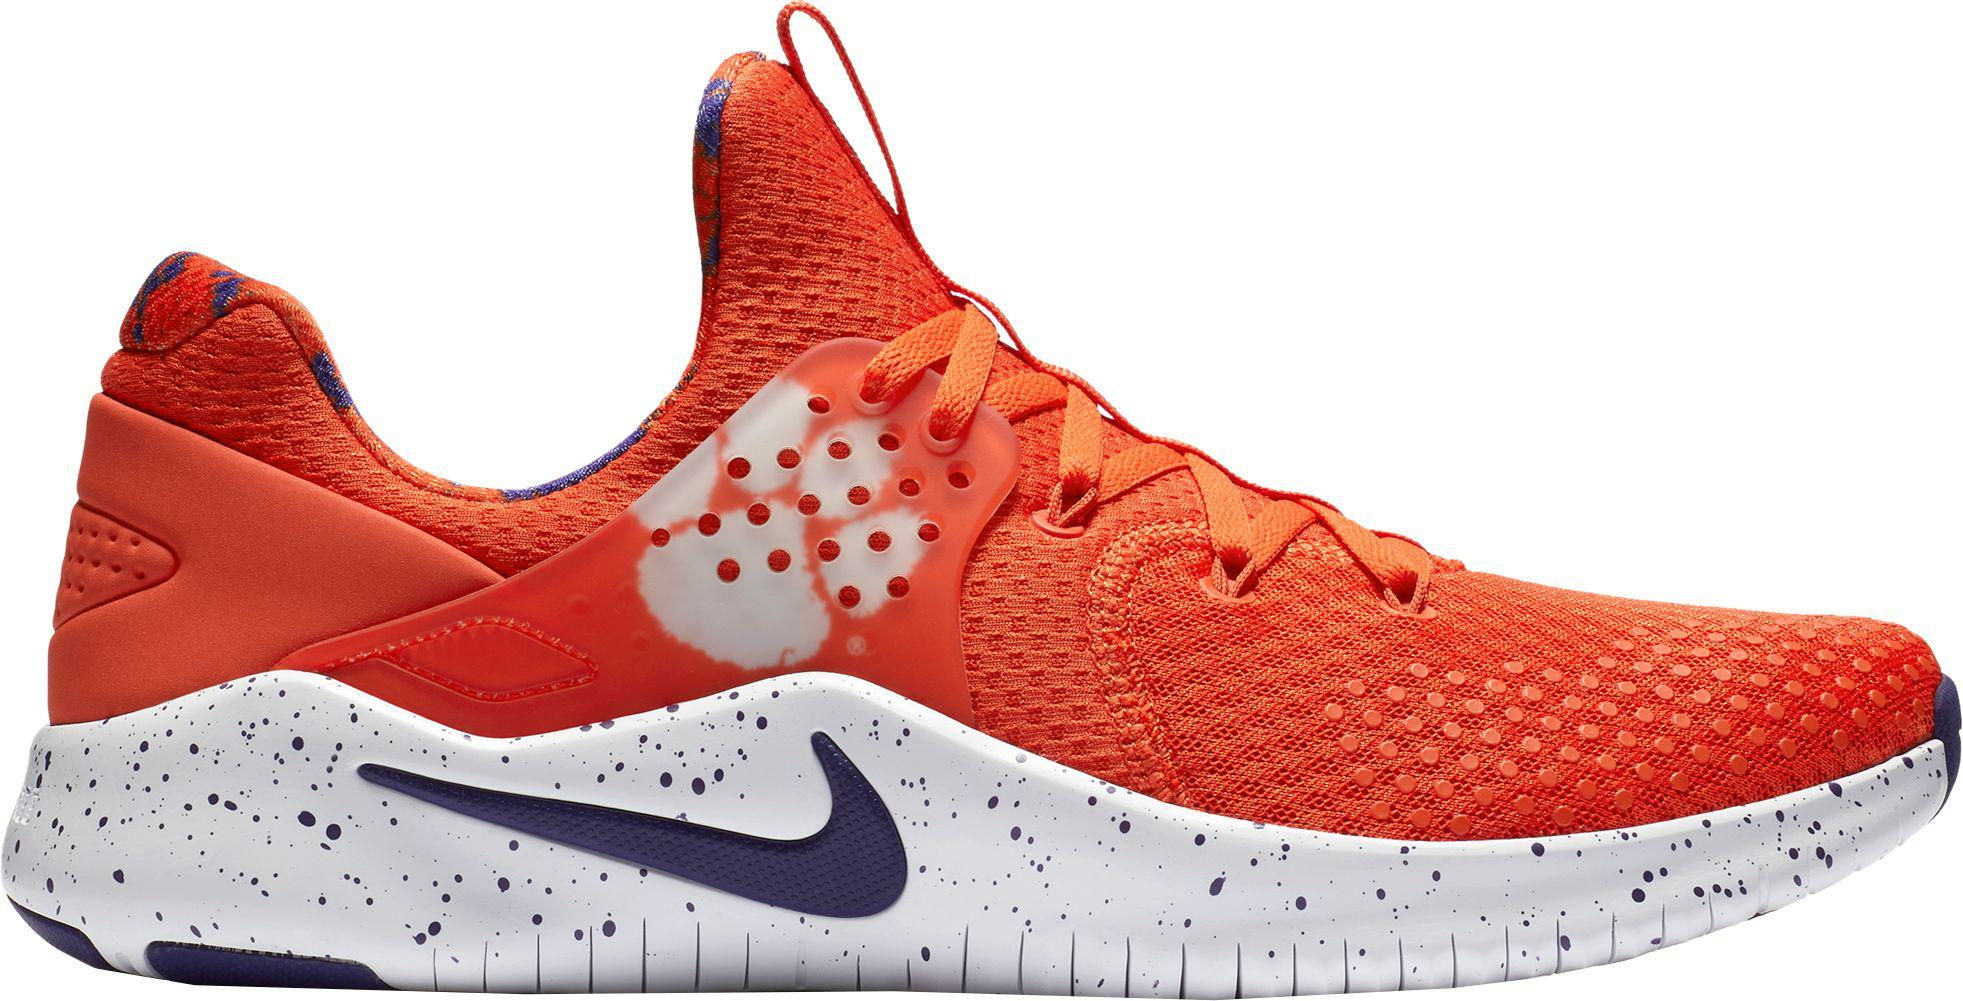 Lyst for Nike Tr - Shoes Free Rubber Men 8 Clemson Training